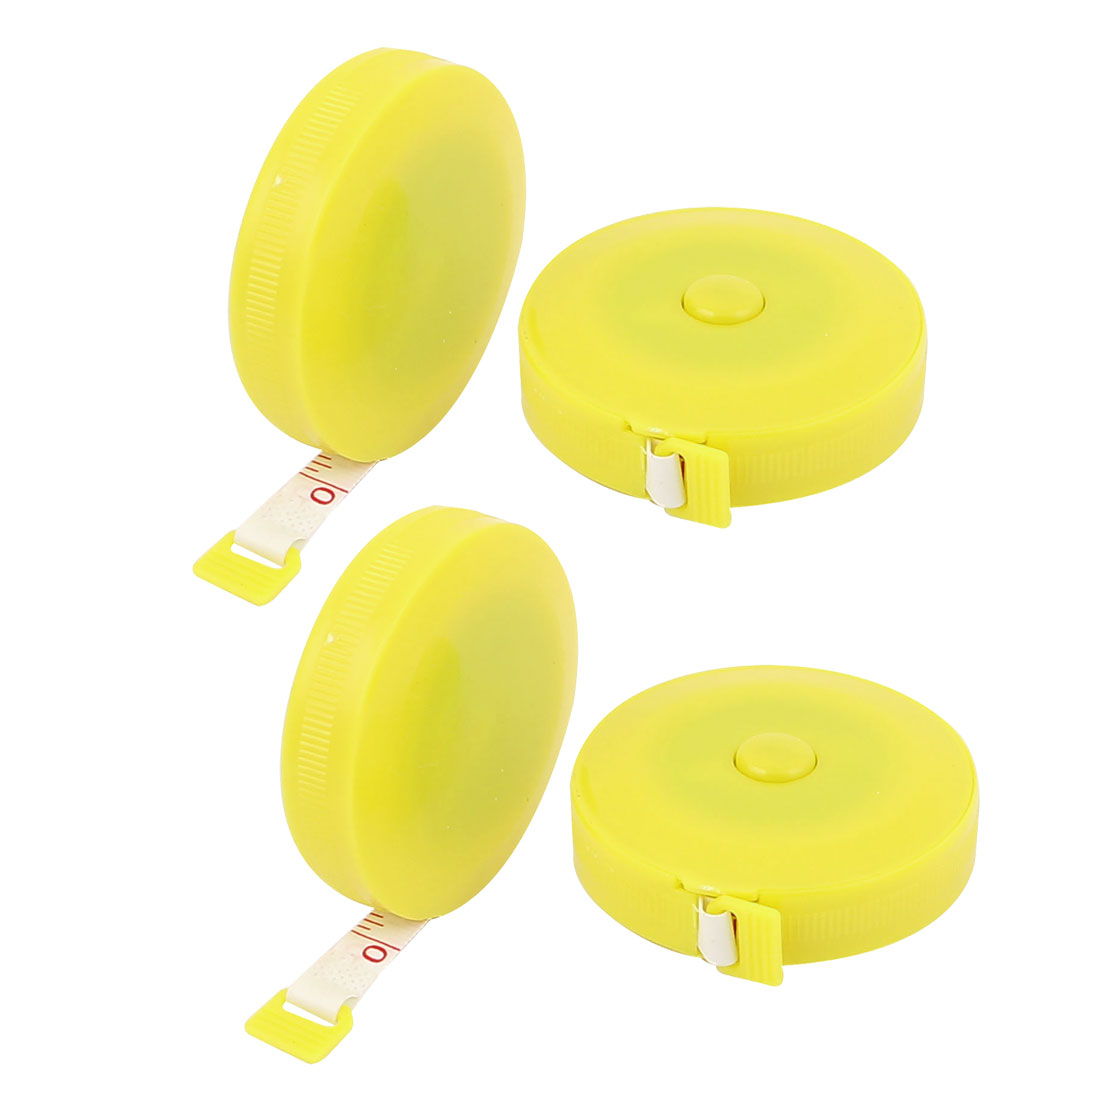 """60"""" 1.5M Sewing Tailor Round Housing Retractable Double Sided Tape Ruler Measuring Tool Yellow 4pcs"""